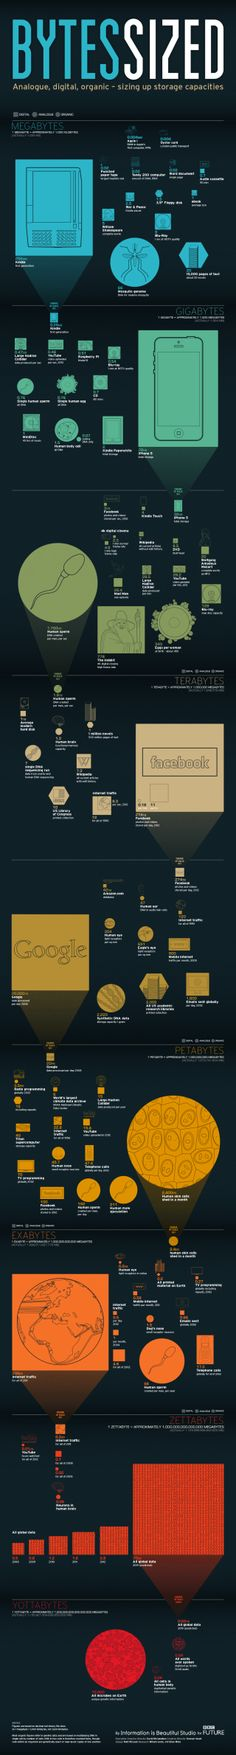 Bytes Sized - Understanding Storage Capacities of Computers | Infographic